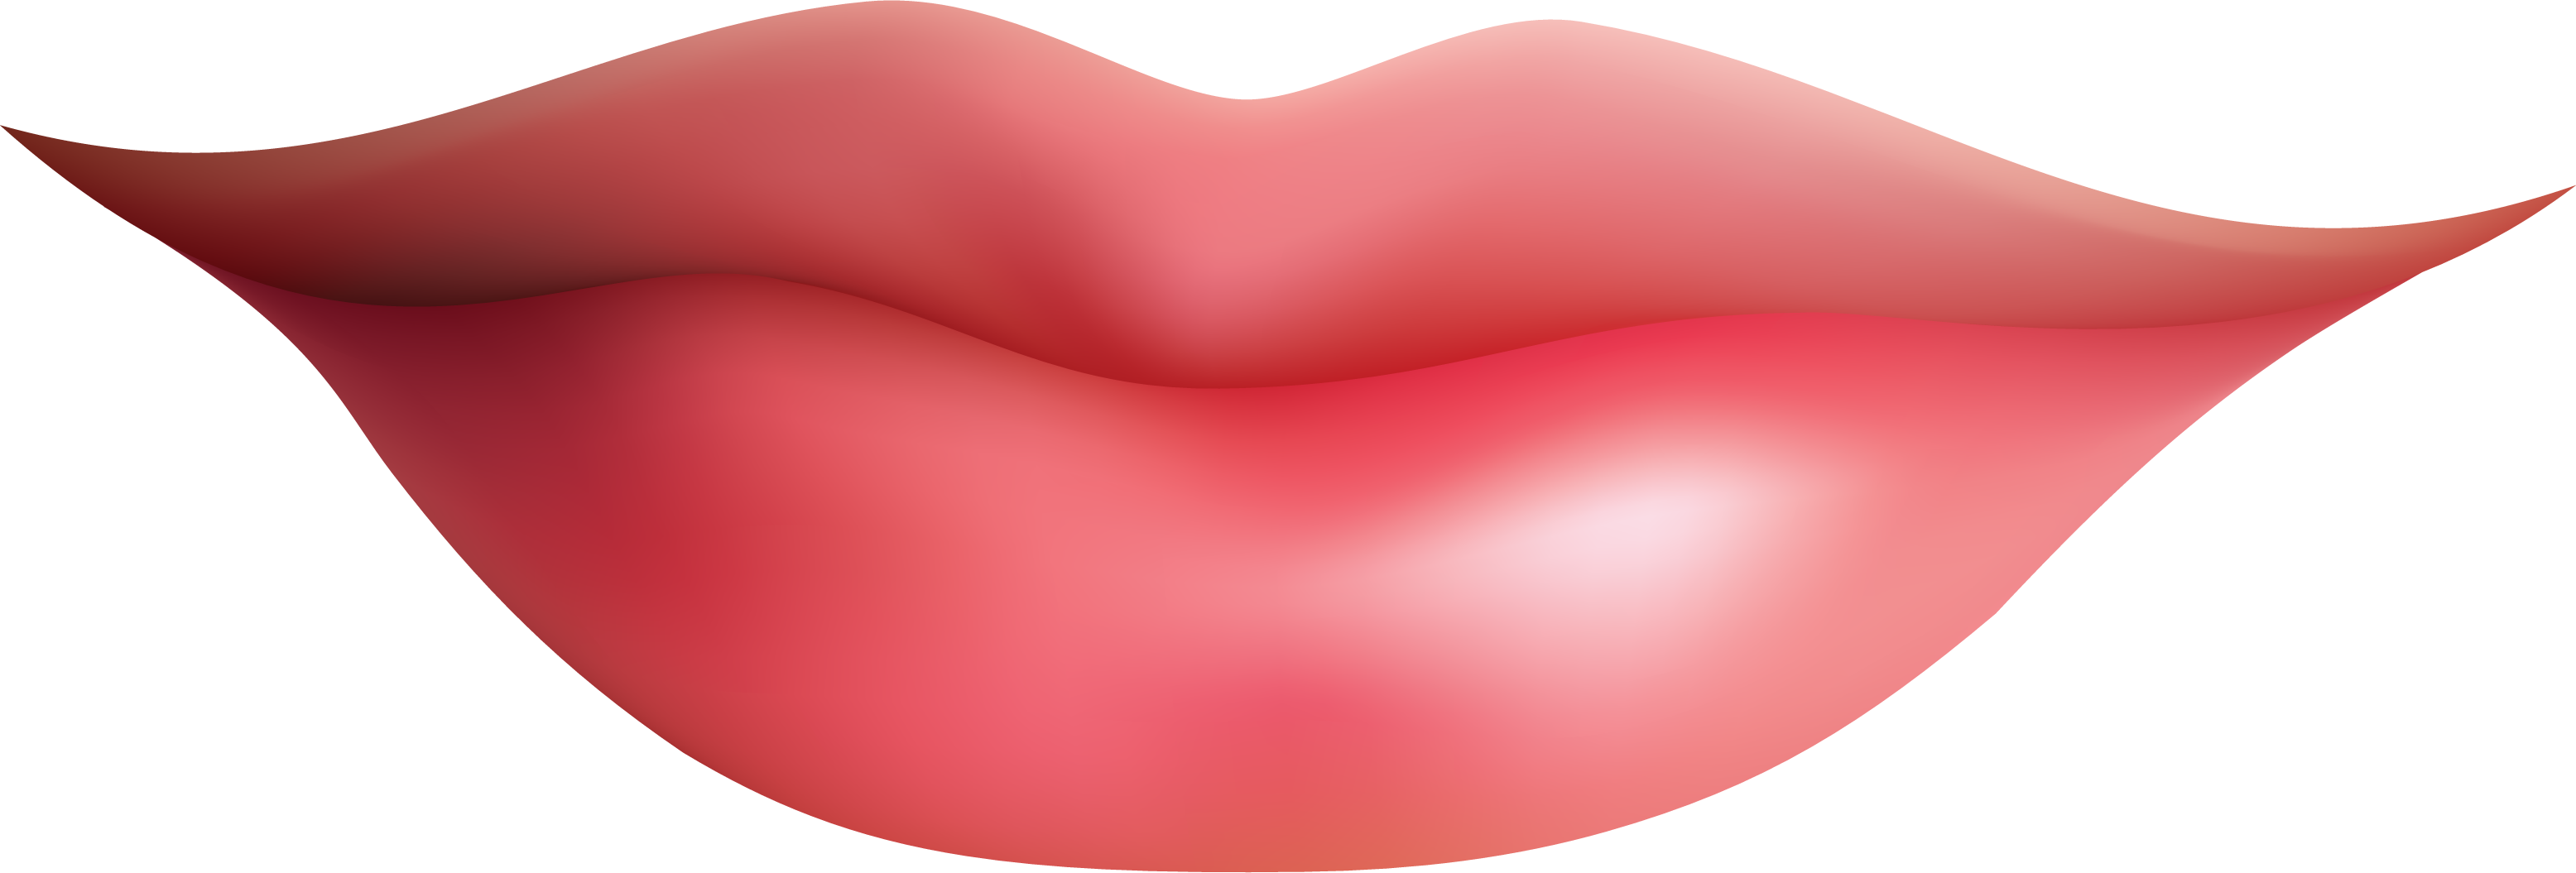 Clipart lips clipart image 9